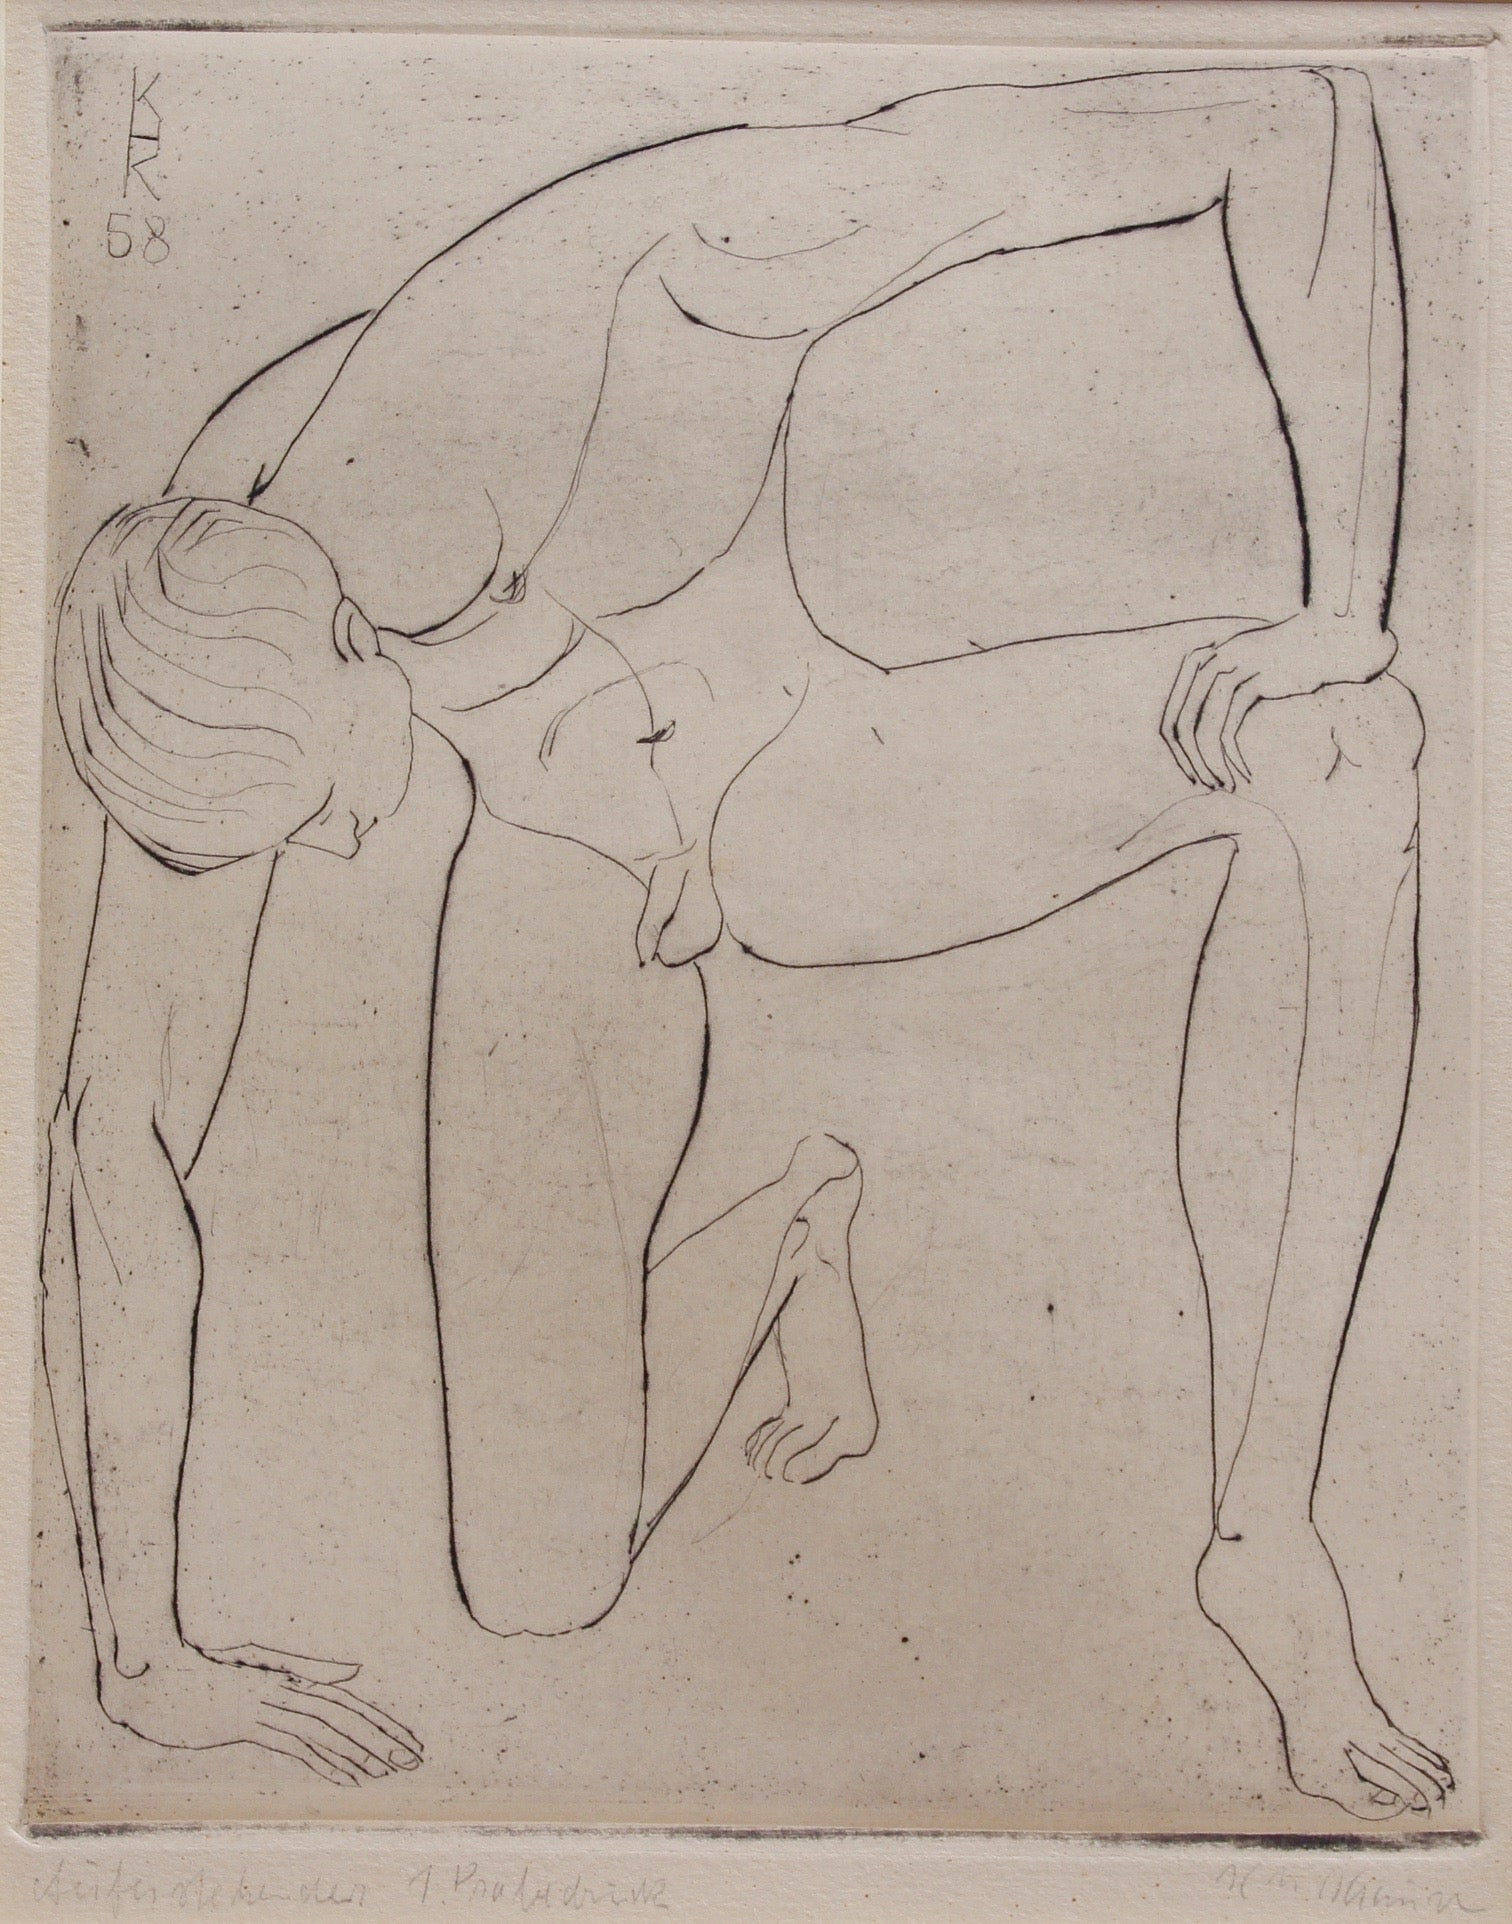 'Study of a Nude Young Man' by KHK (1958)